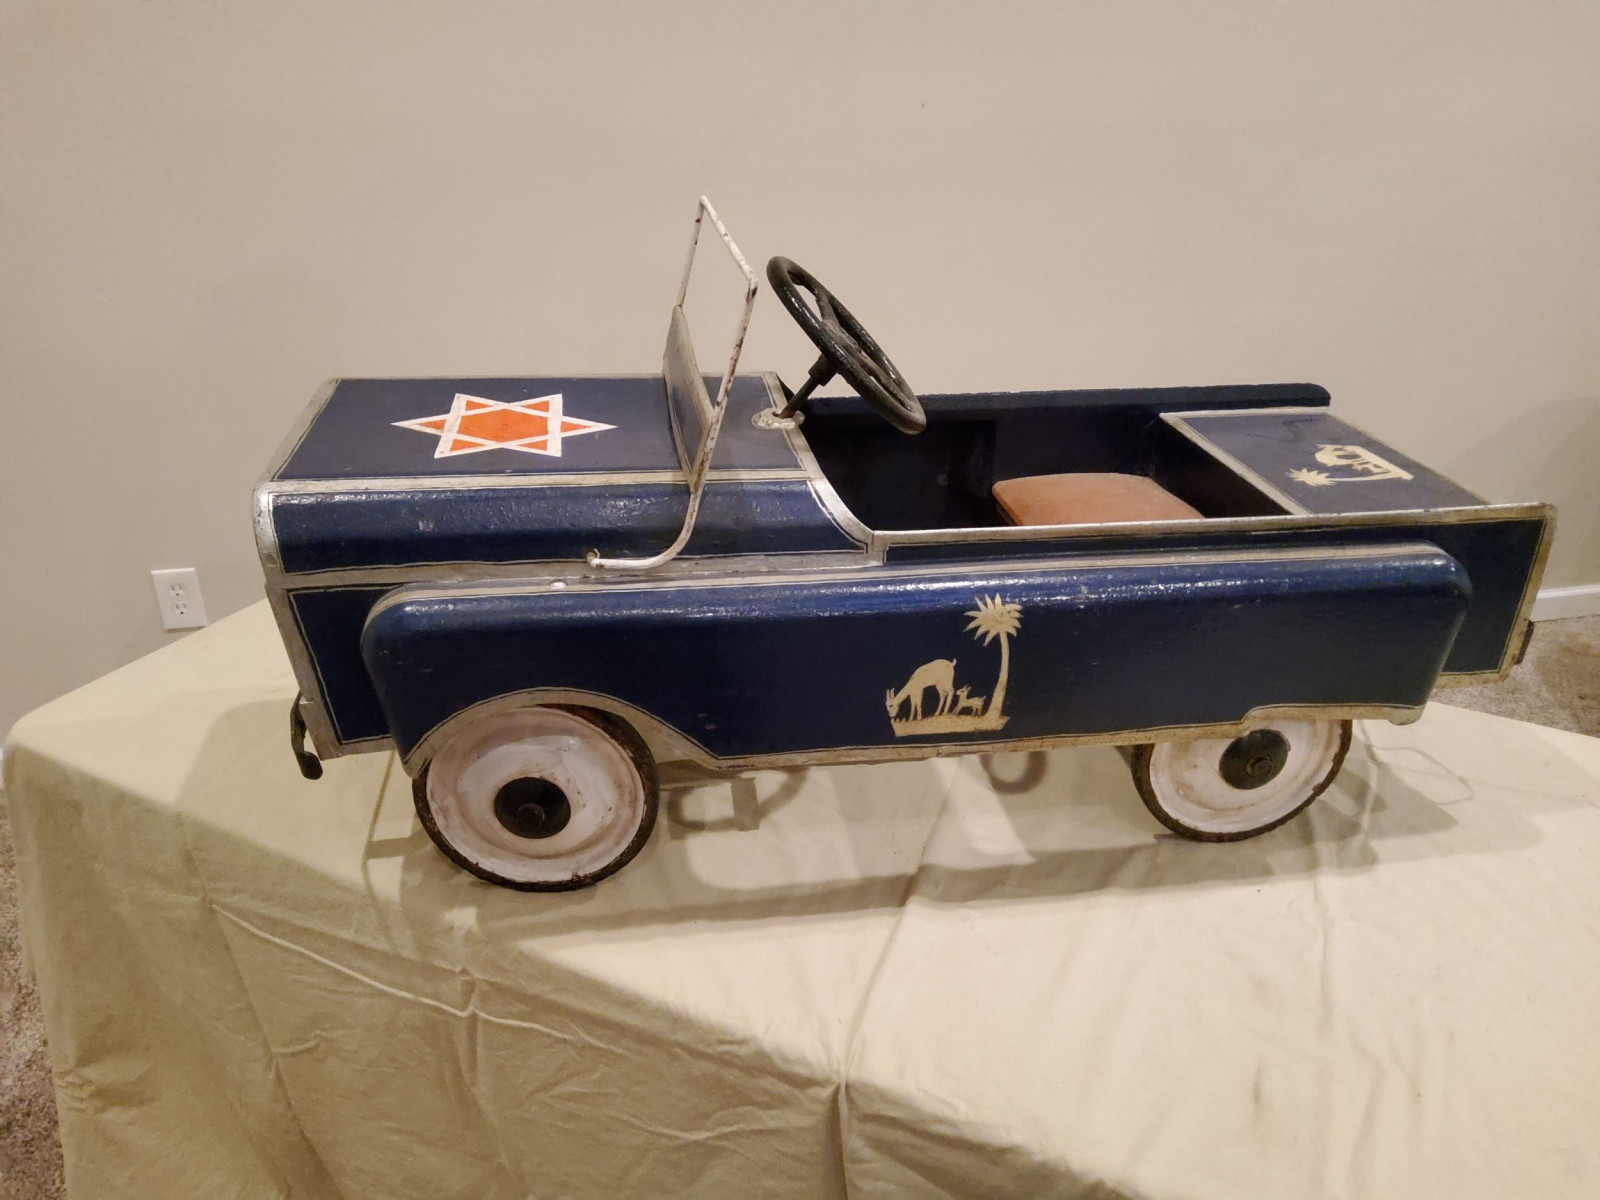 1963 Jeep Pedal Car - Image 6